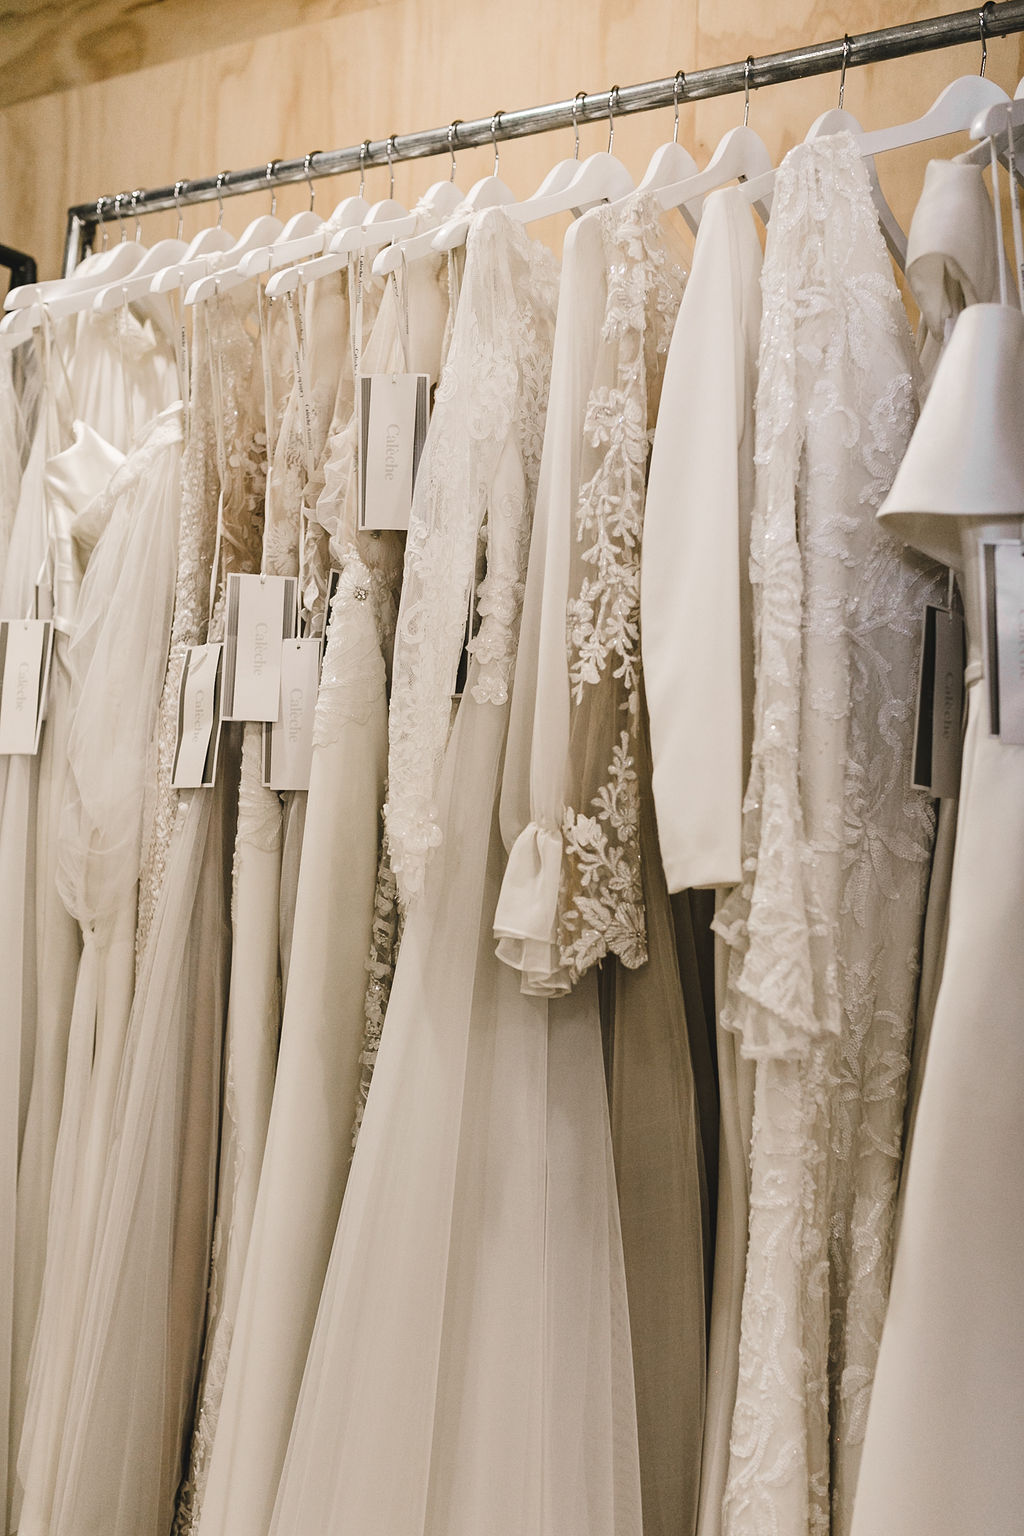 Rack of bridal gowns in Calèche boutique